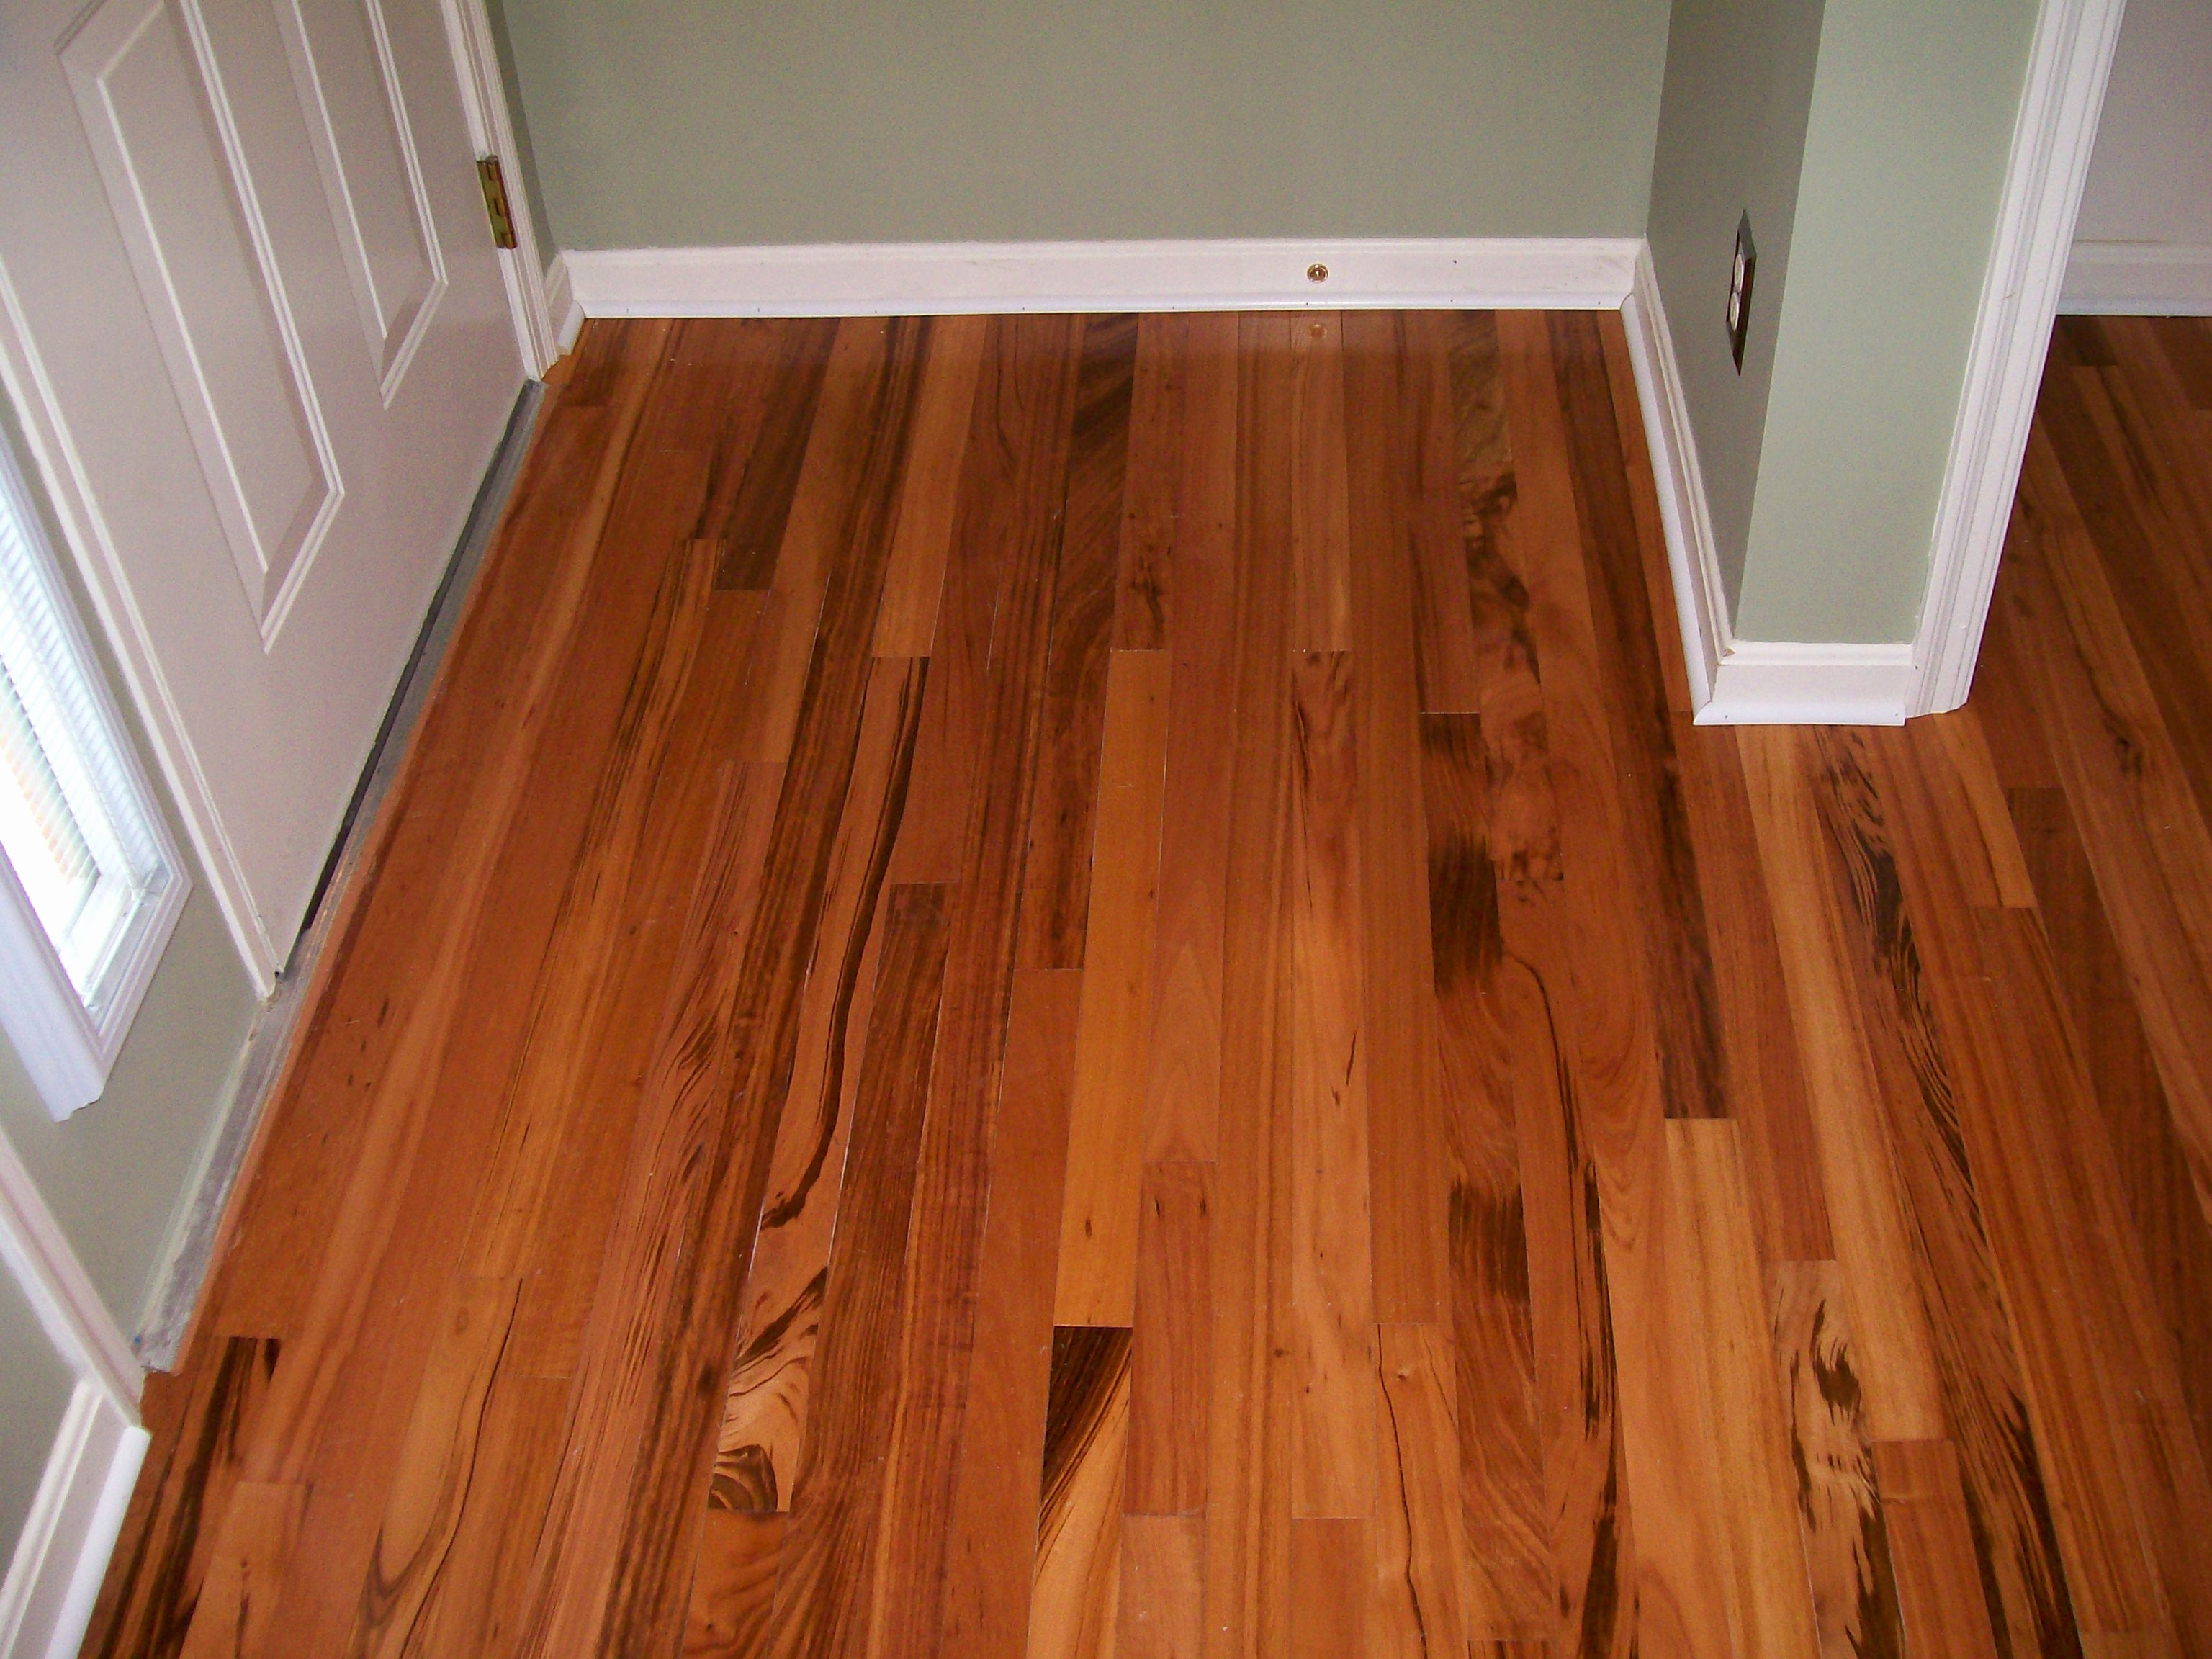 prefinished oak hardwood flooring prices of 17 new cost of hardwood floor installation pics dizpos com with regard to cost of hardwood floor installation new 50 fresh estimated cost installing hardwood floors 50 photos of